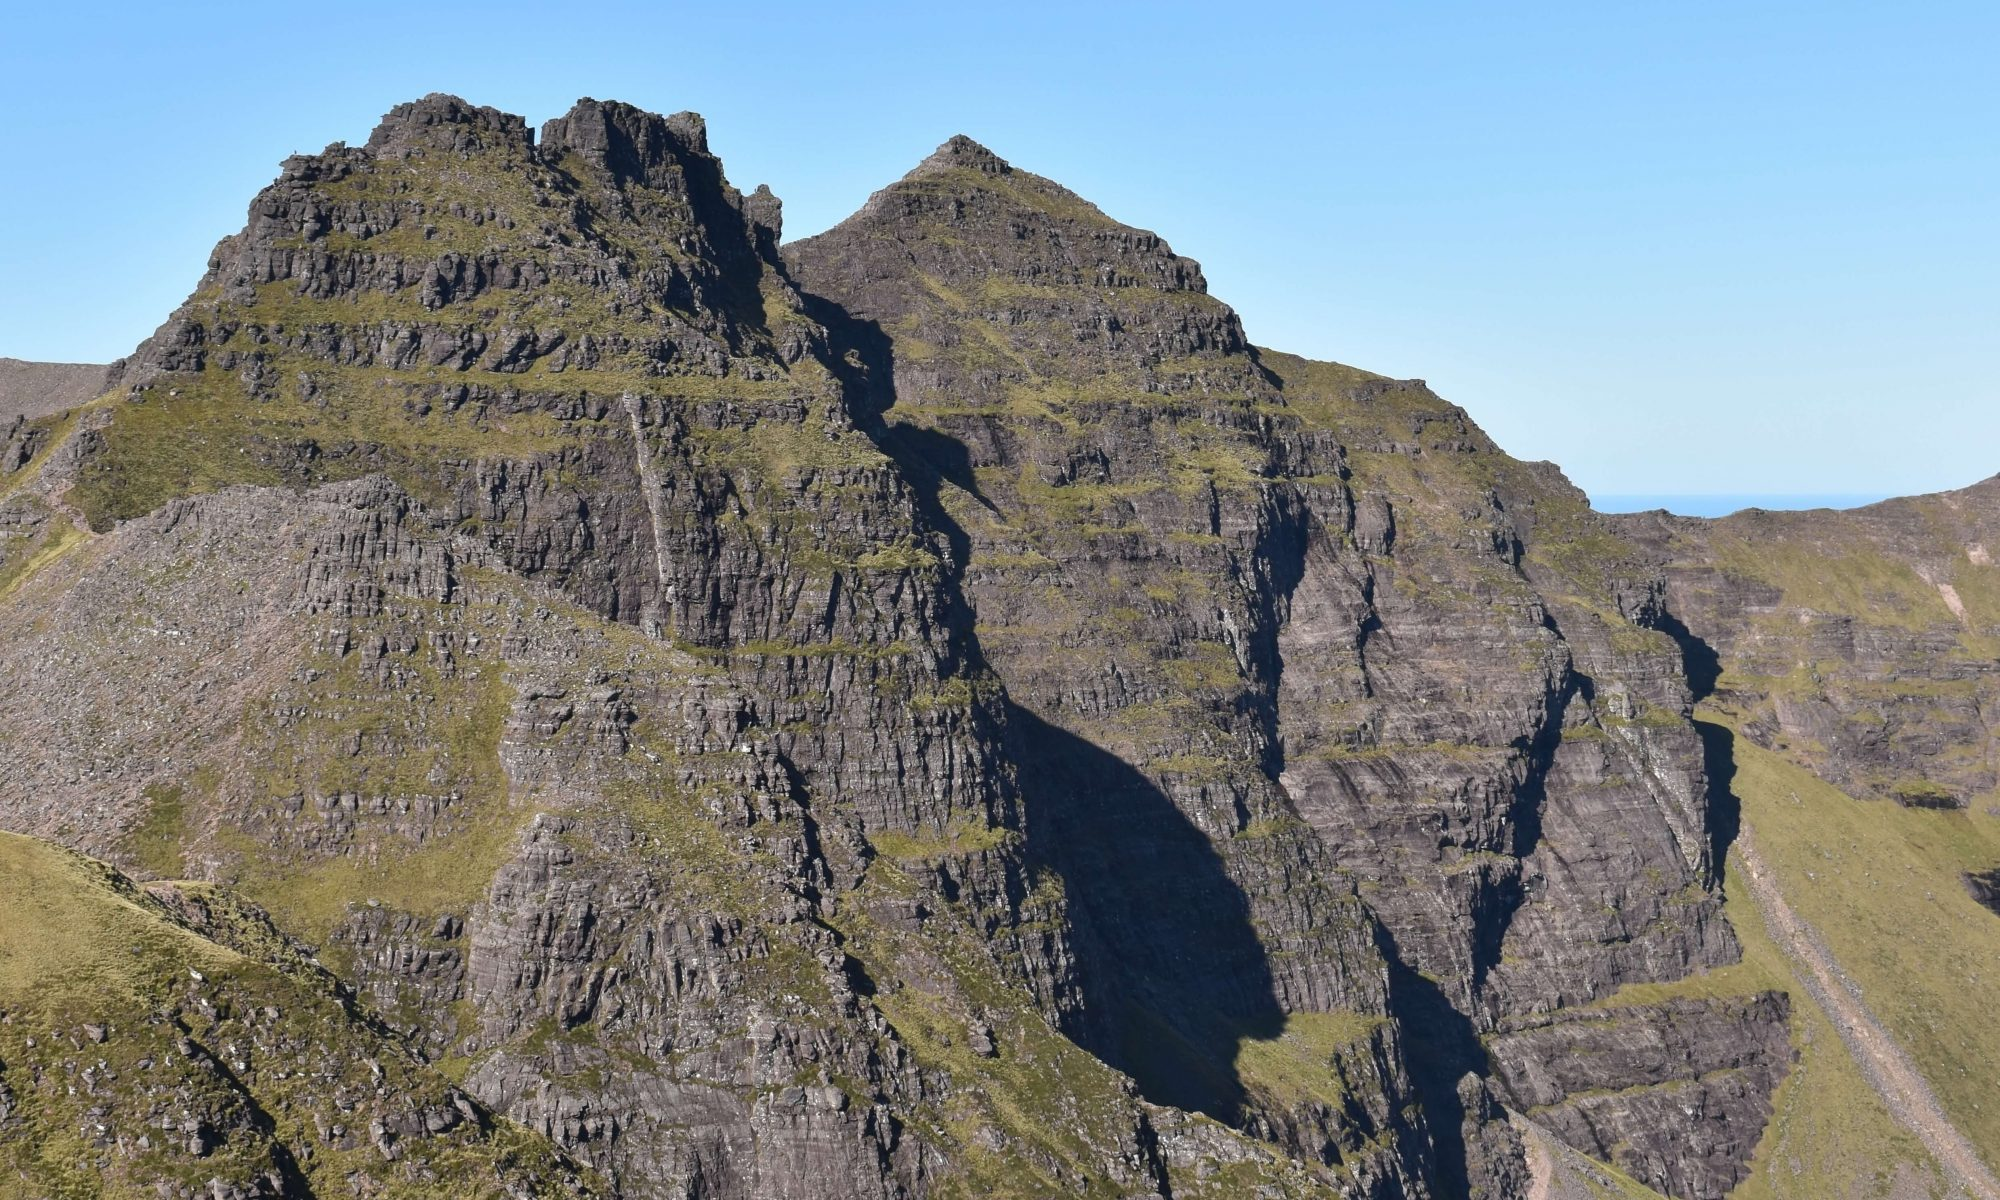 Sgurr Fiona, viewed from the ascent. Sgurr Fiona is a Munro summit of An Teallach in the north west Scottish highlands